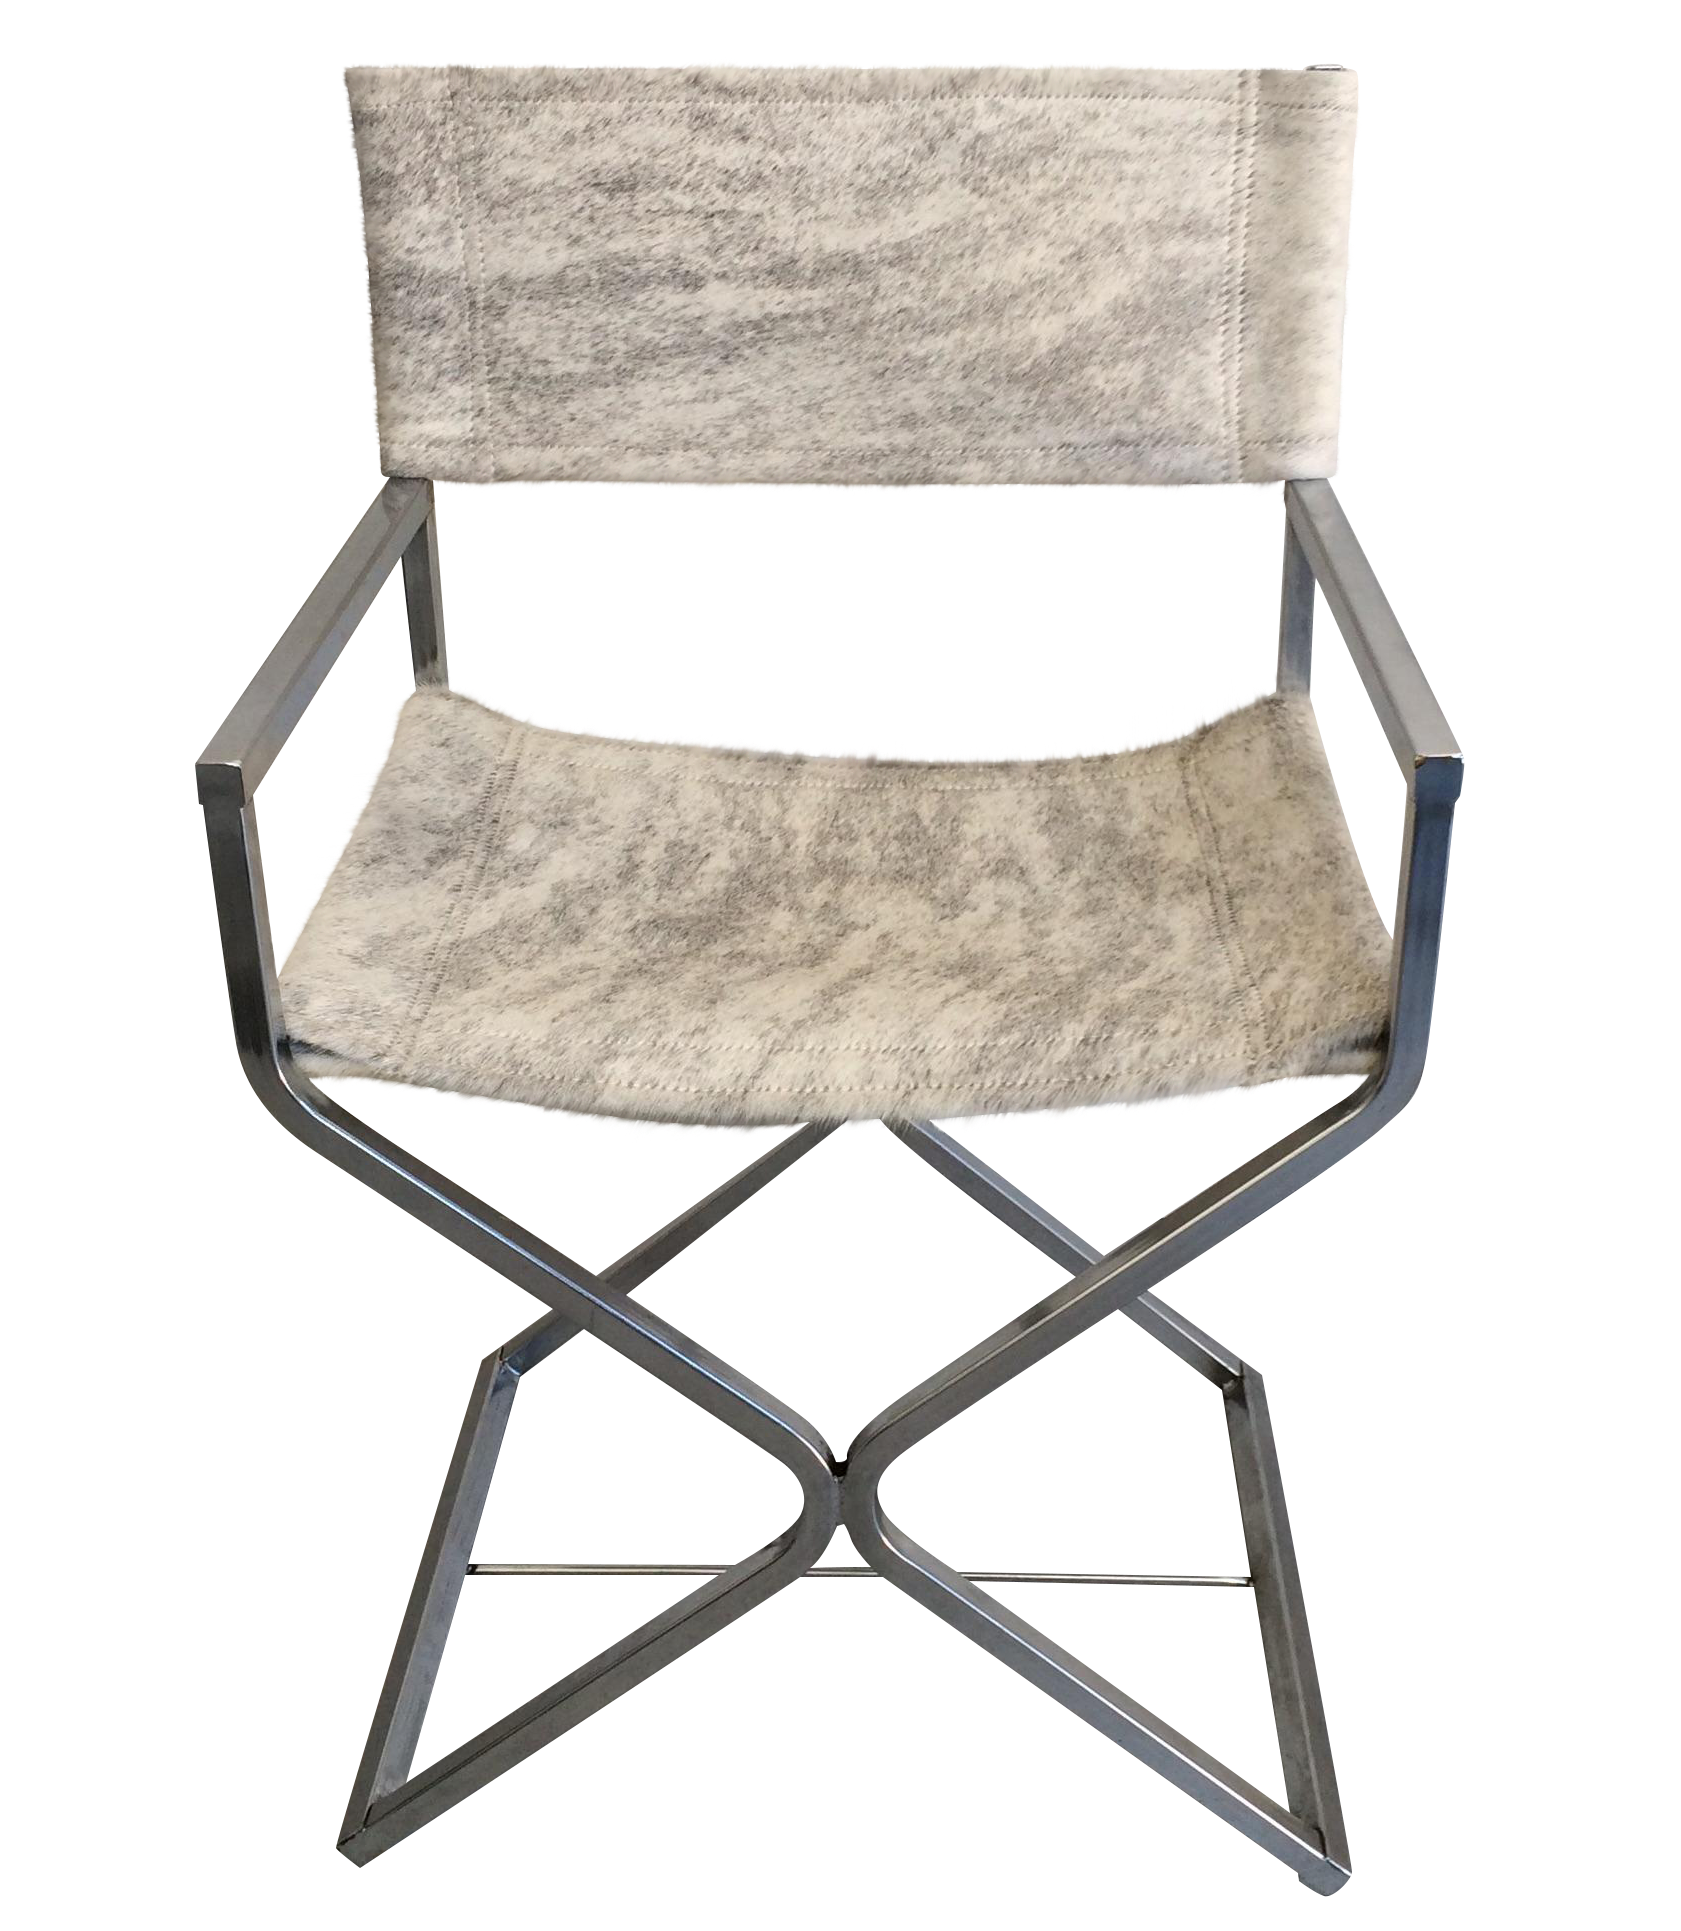 Directors chair png - A Steel Chrome Plate Square Tubular Directors Chair Designed By Robert Jakobsen For Virtue Brothers